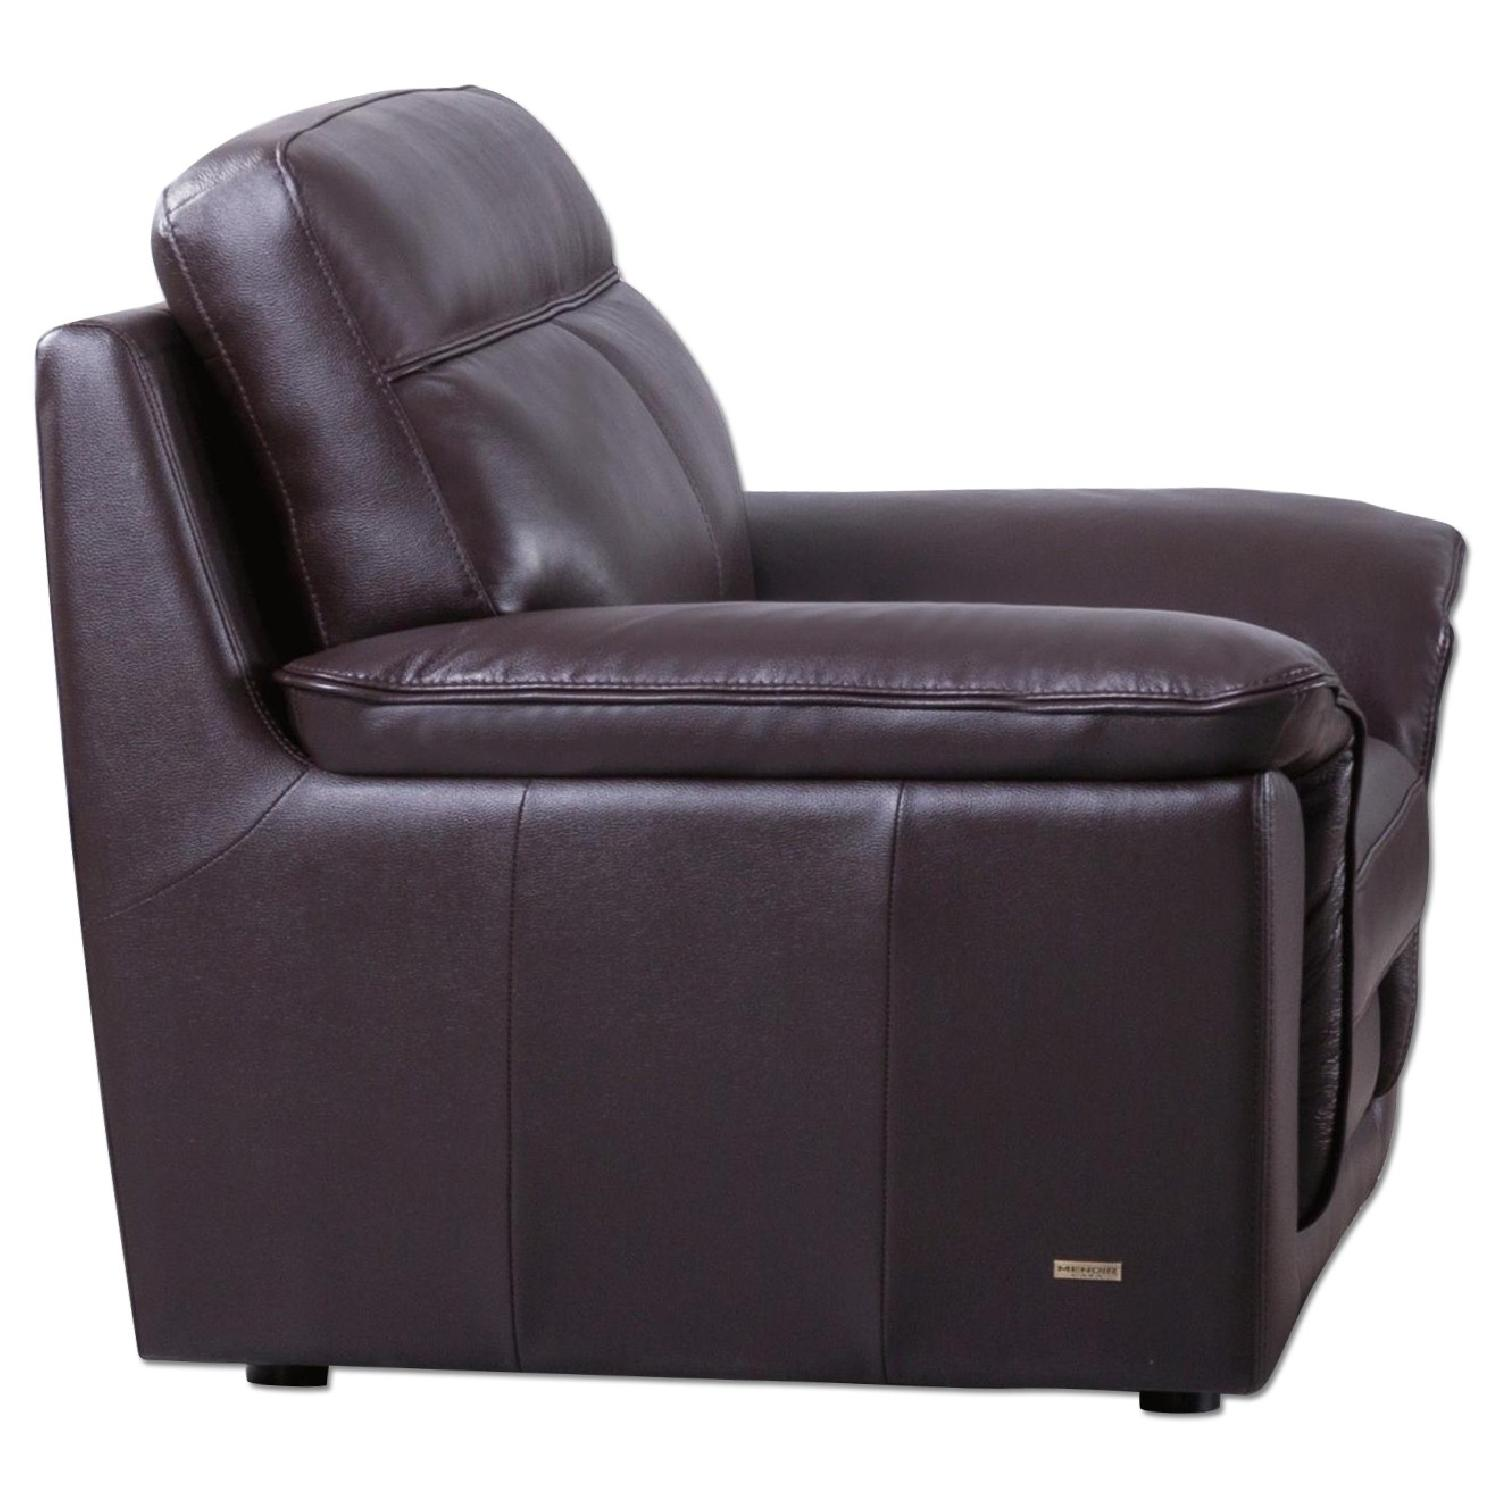 Modern Style Arm Chair In Dark Brown Top Grain Leather